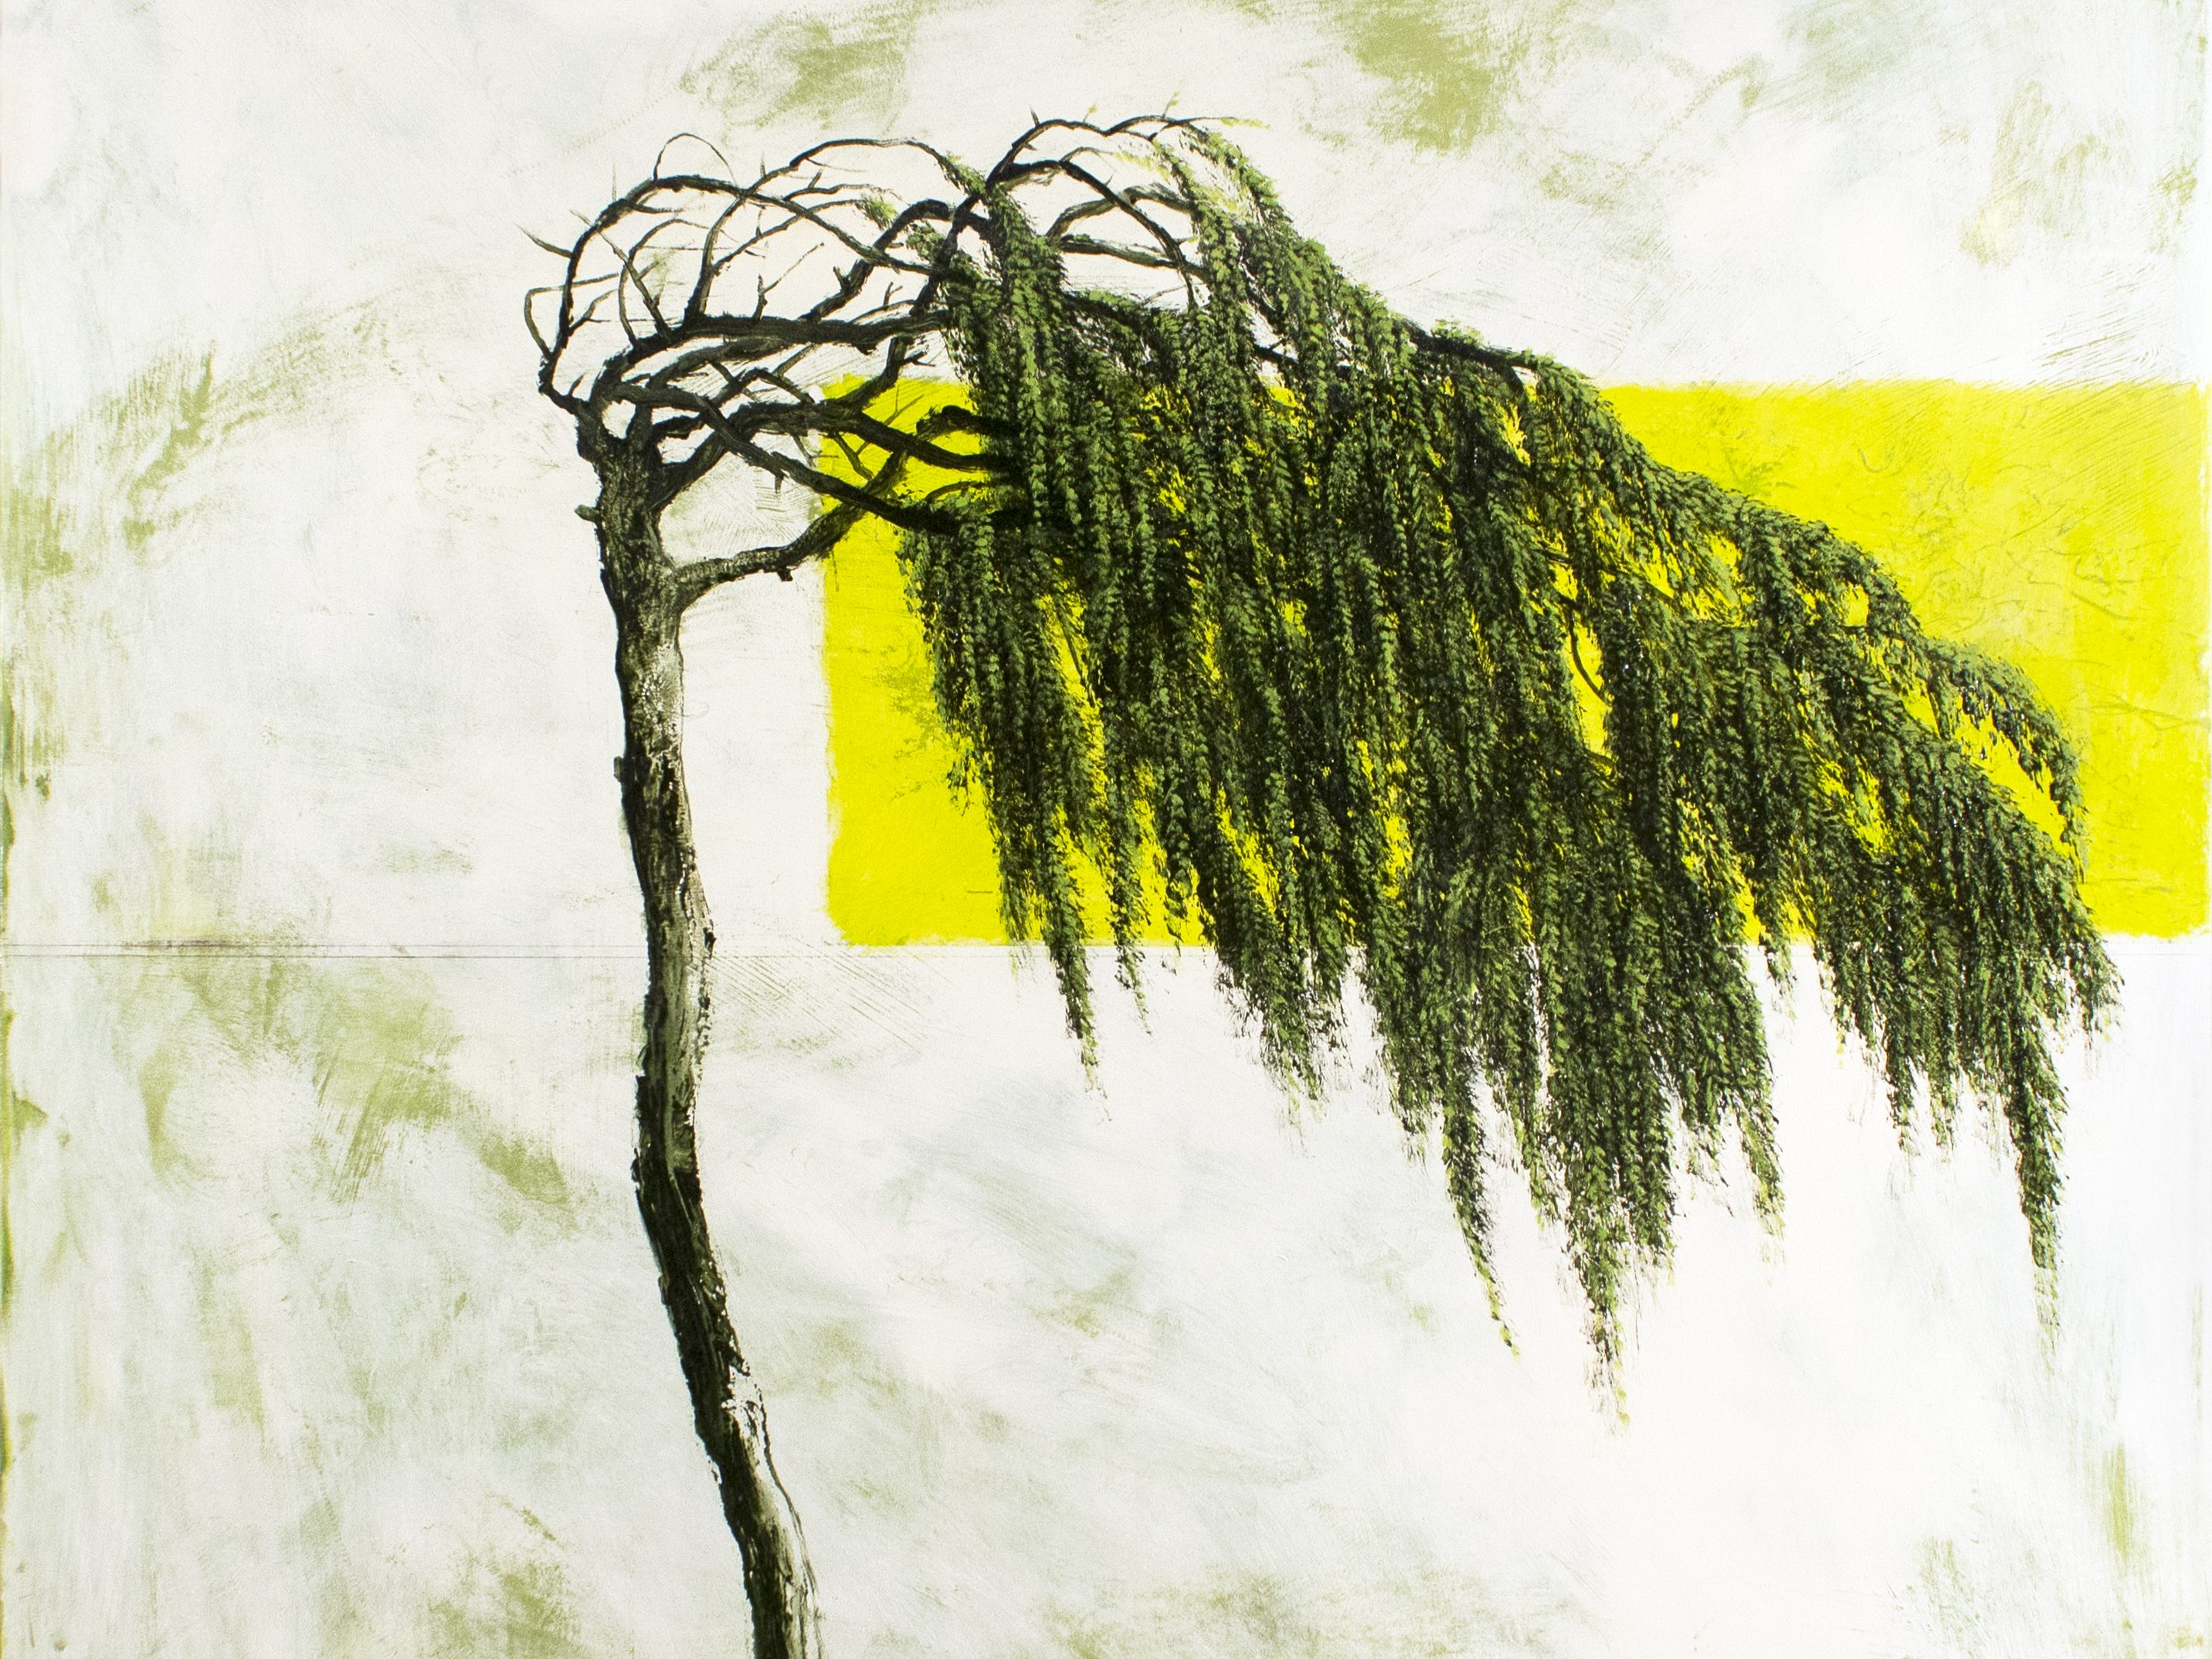 A tired tree's branches are bent to one side and droop. Painted against a cloudy white canvas, a stripe of white interrupts the background of the painting.